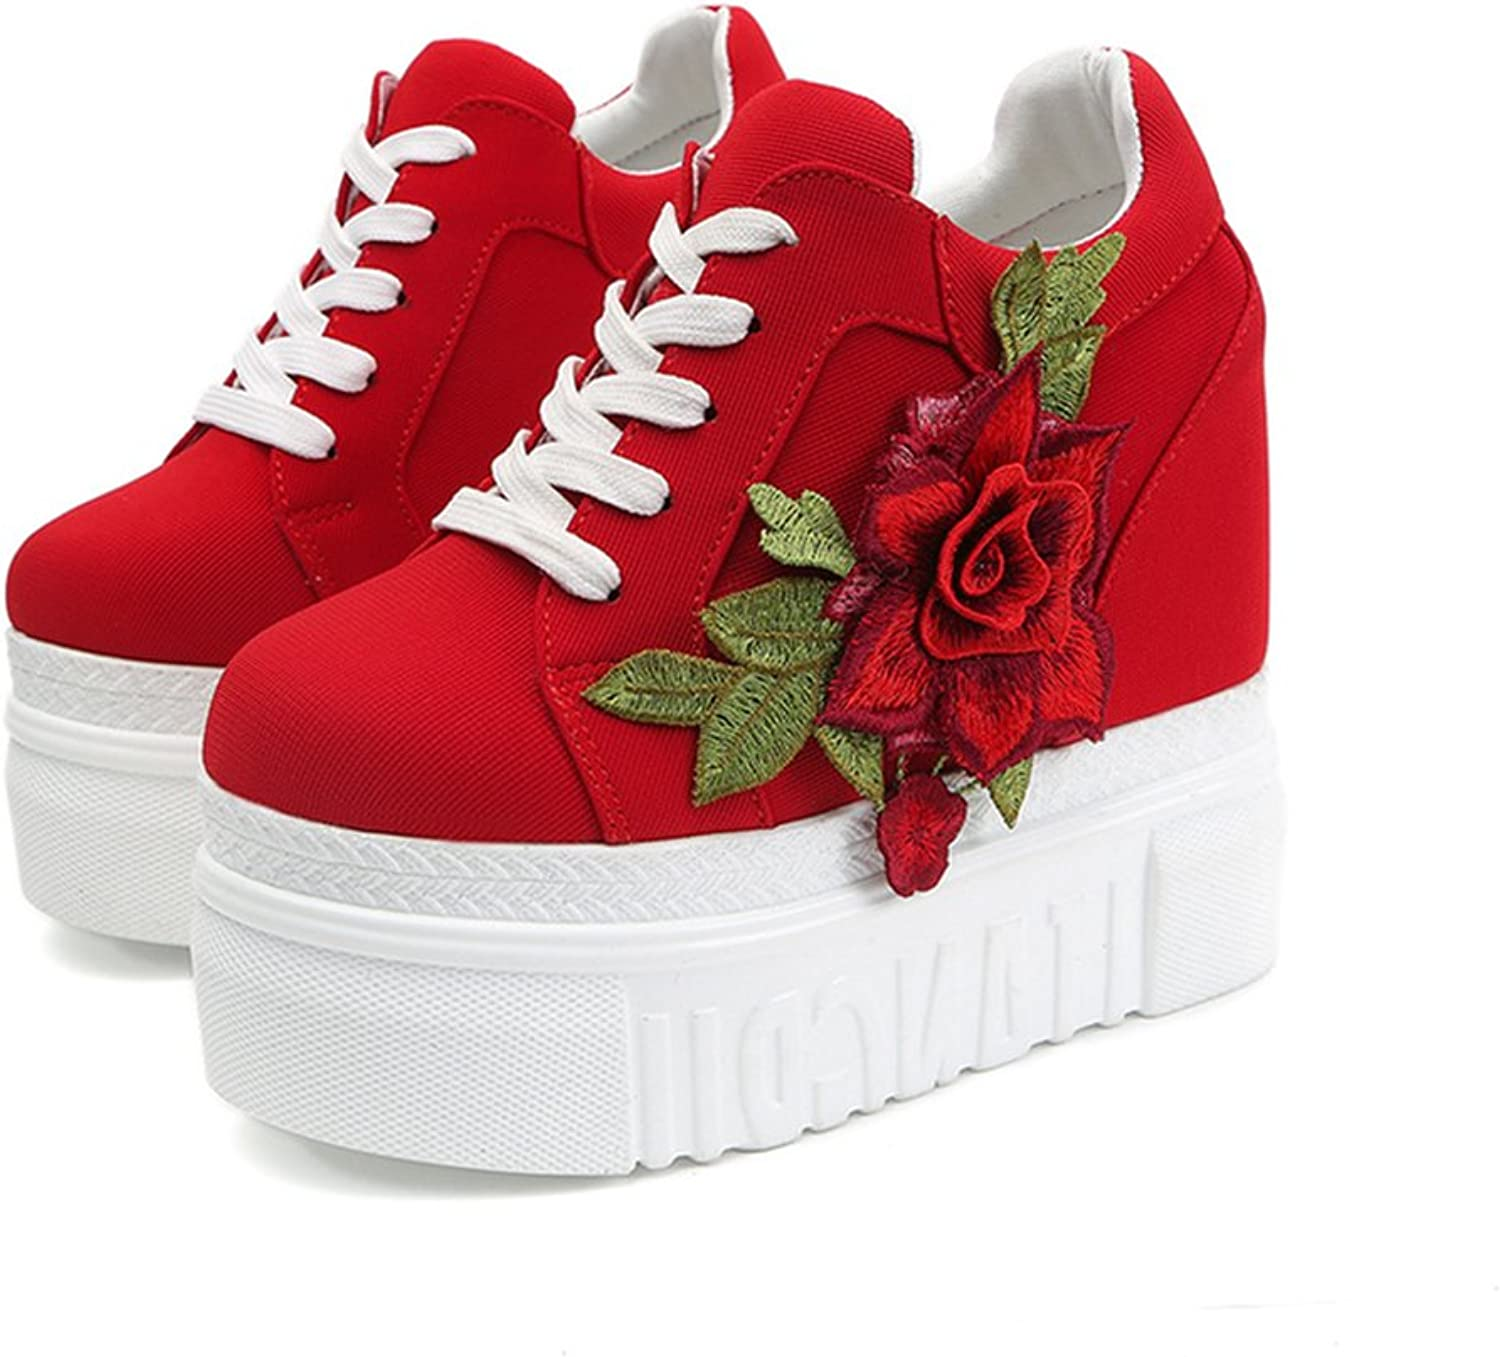 ACE SHOCK Platform Canvas shoes Women, Hidden High with Wedges Sneakers Flower